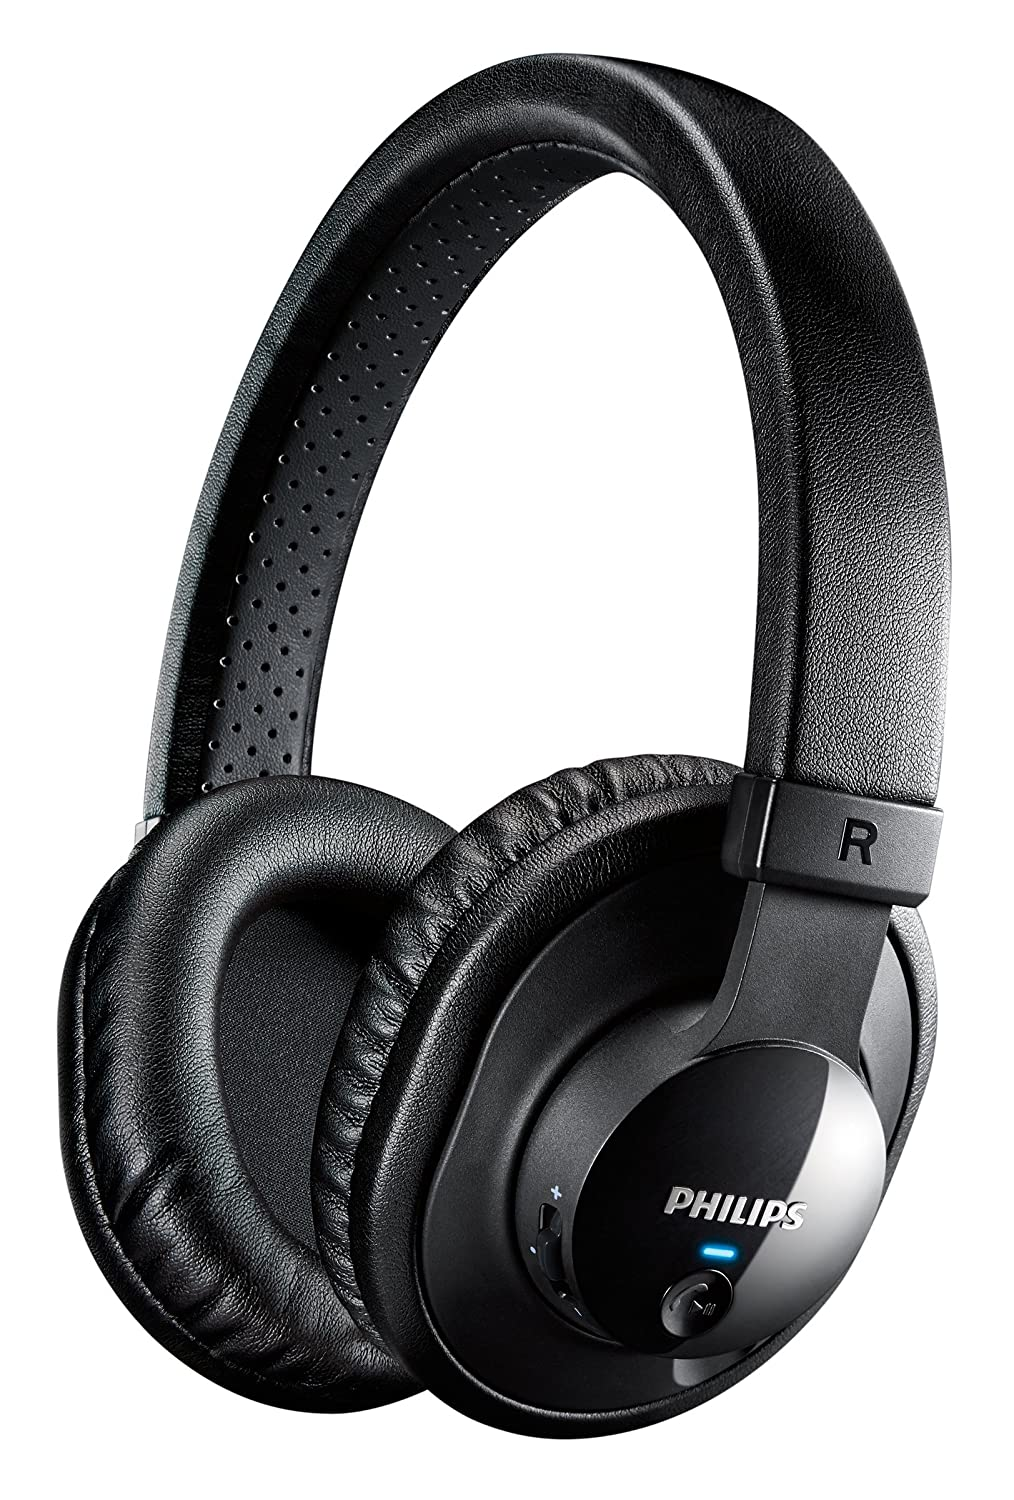 Philips SHB7150FB/00 - Auriculares diadema Bluetooth, negro: Amazon.es: Electrónica